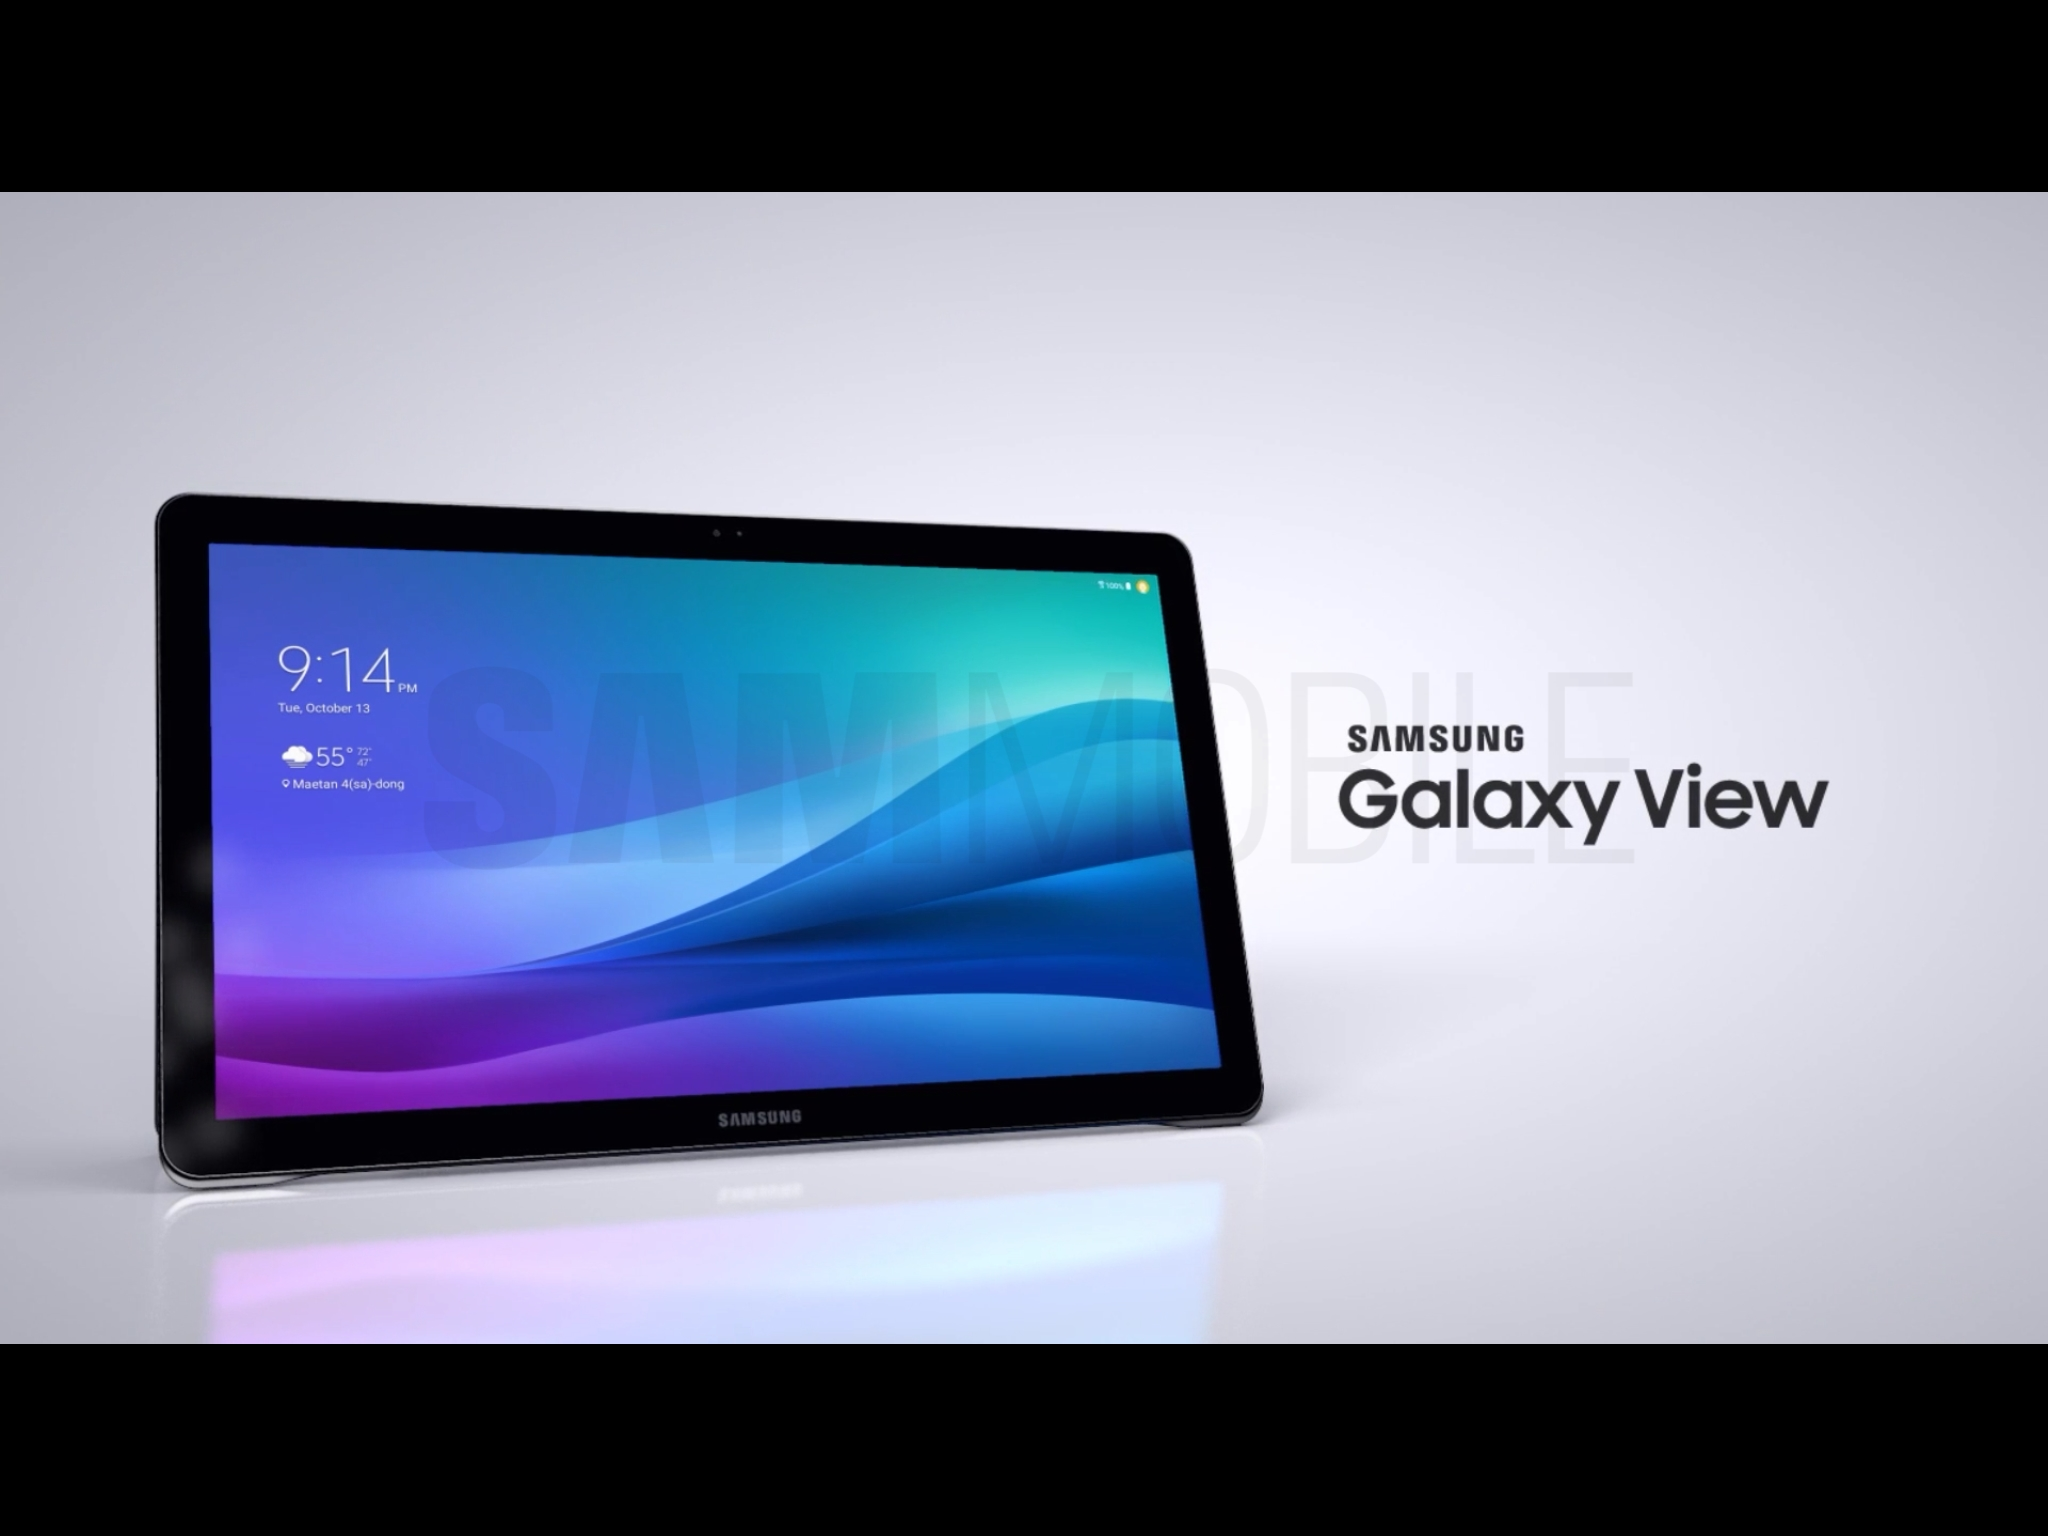 Samsungs huge Galaxy View tablet sells for 599 says preorder 2048x1536